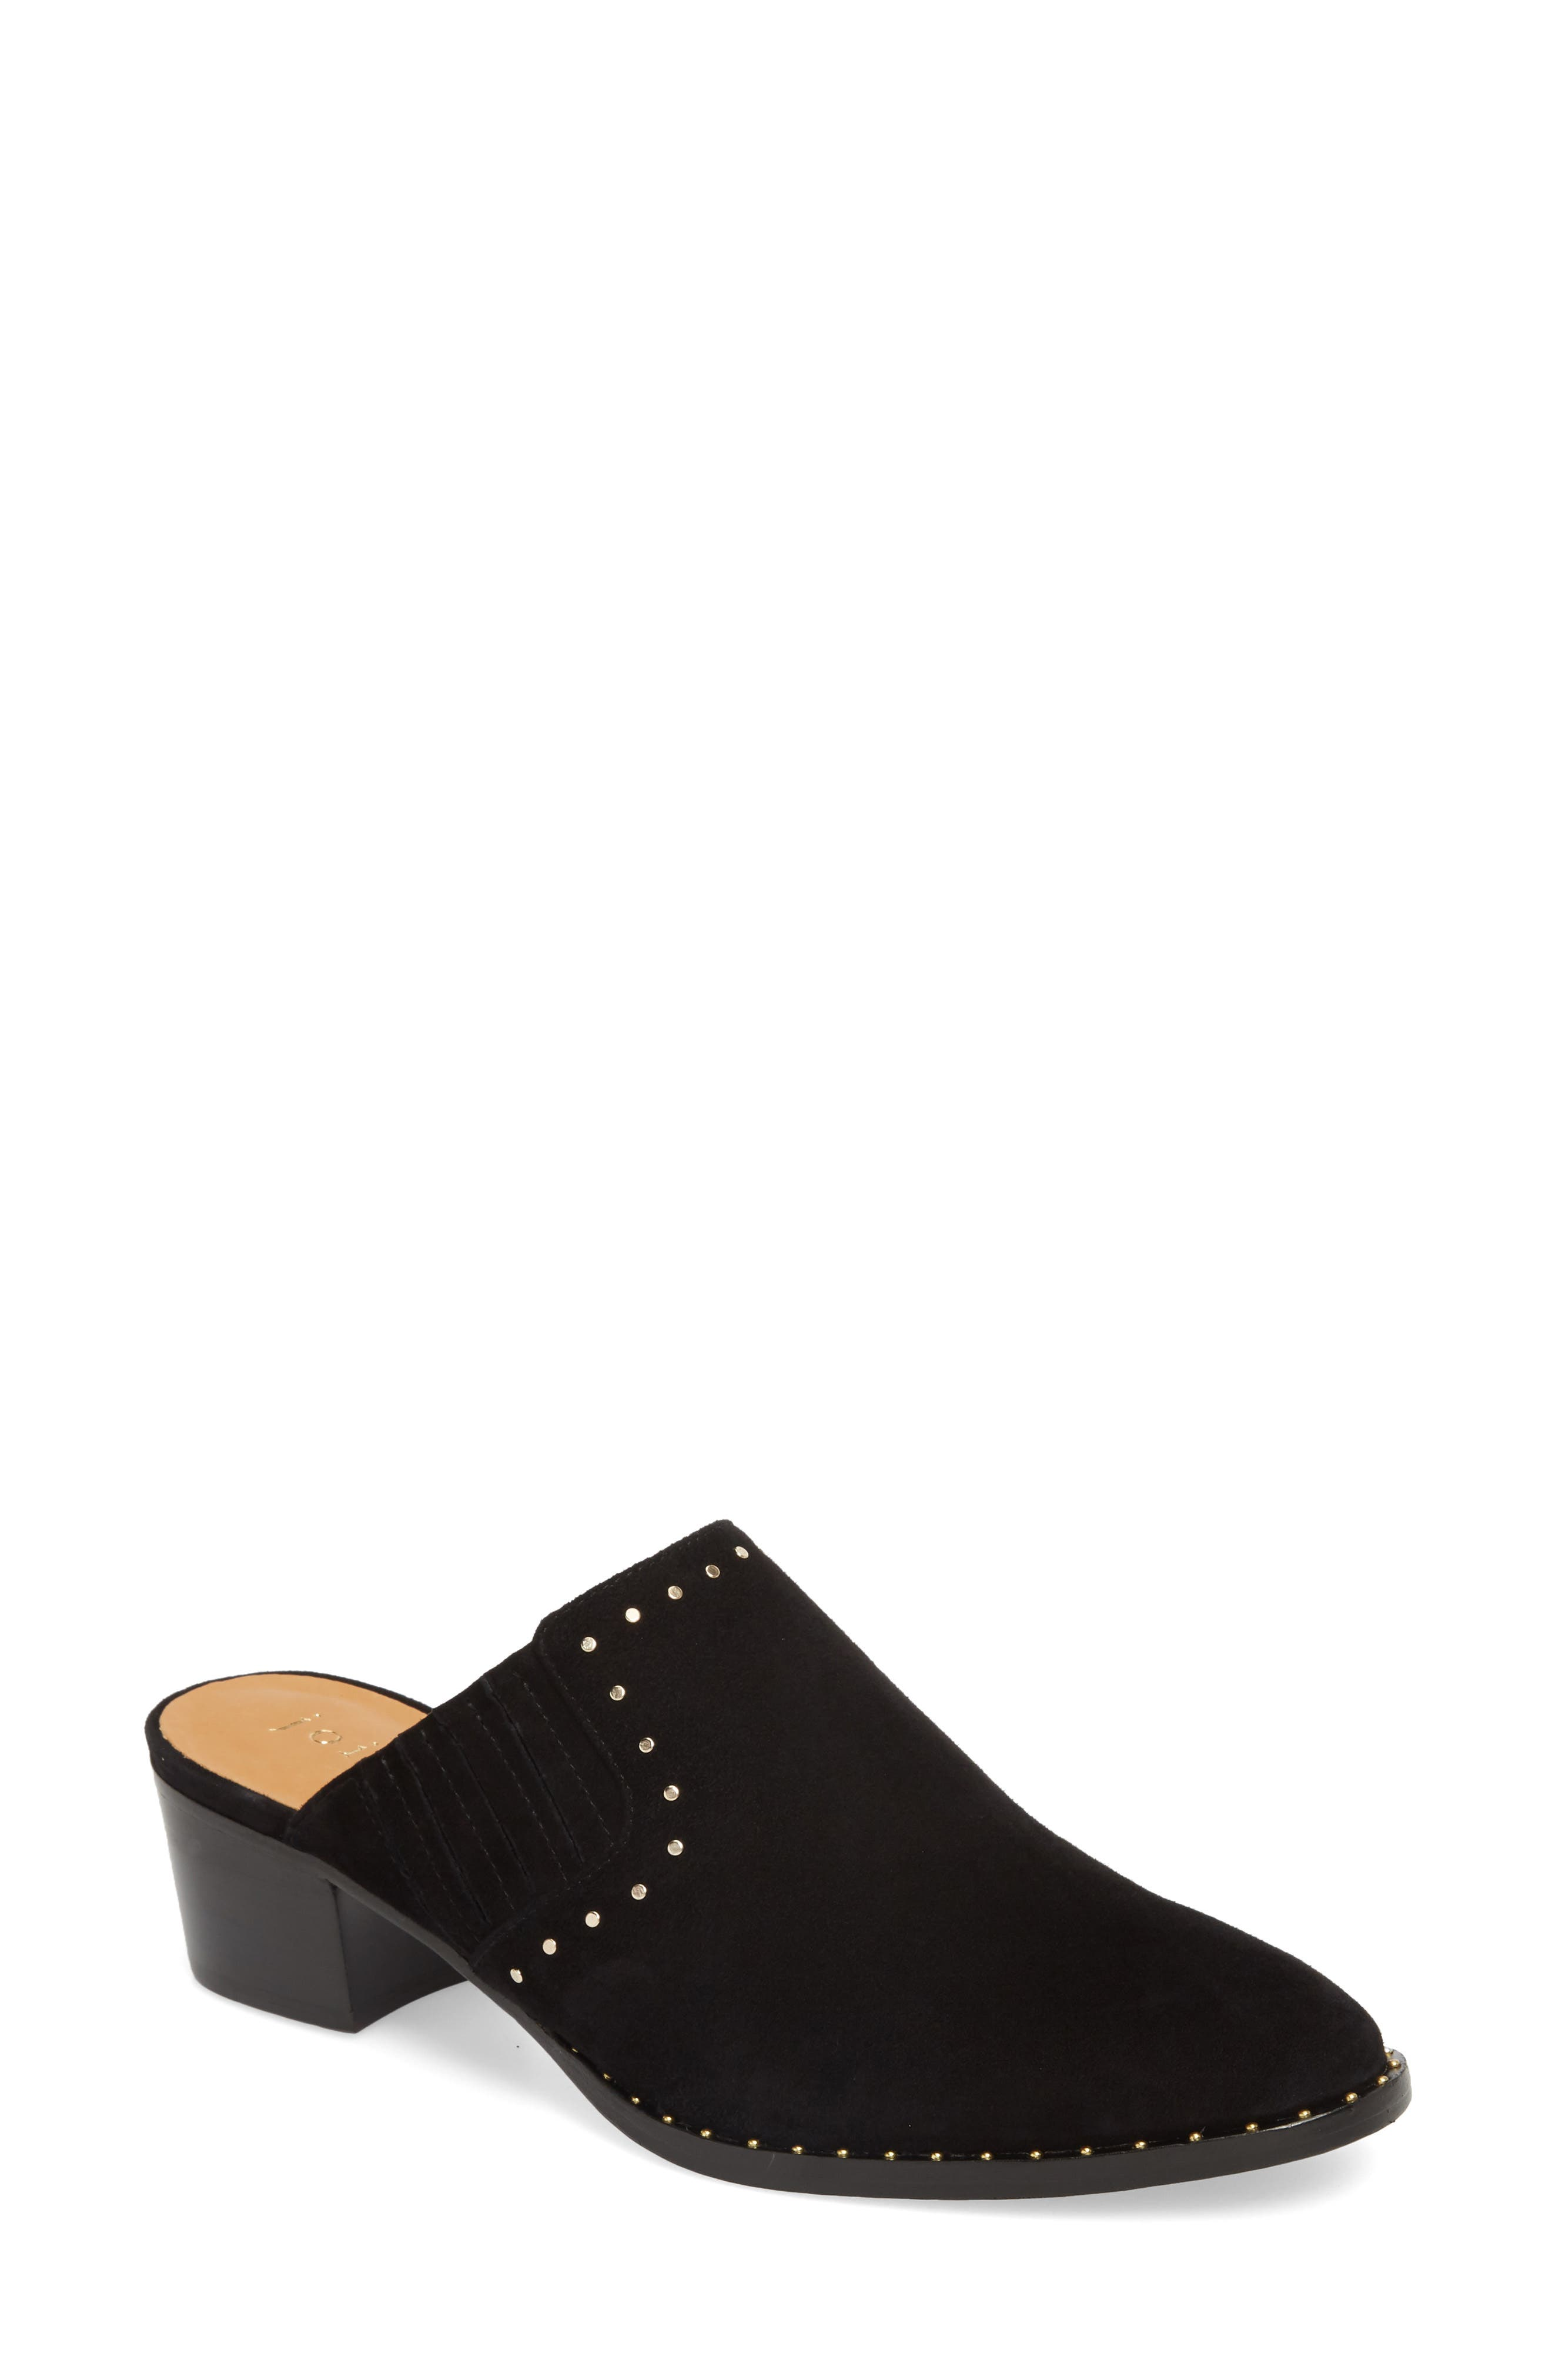 Fayla Studded Mule,                             Main thumbnail 1, color,                             Nero